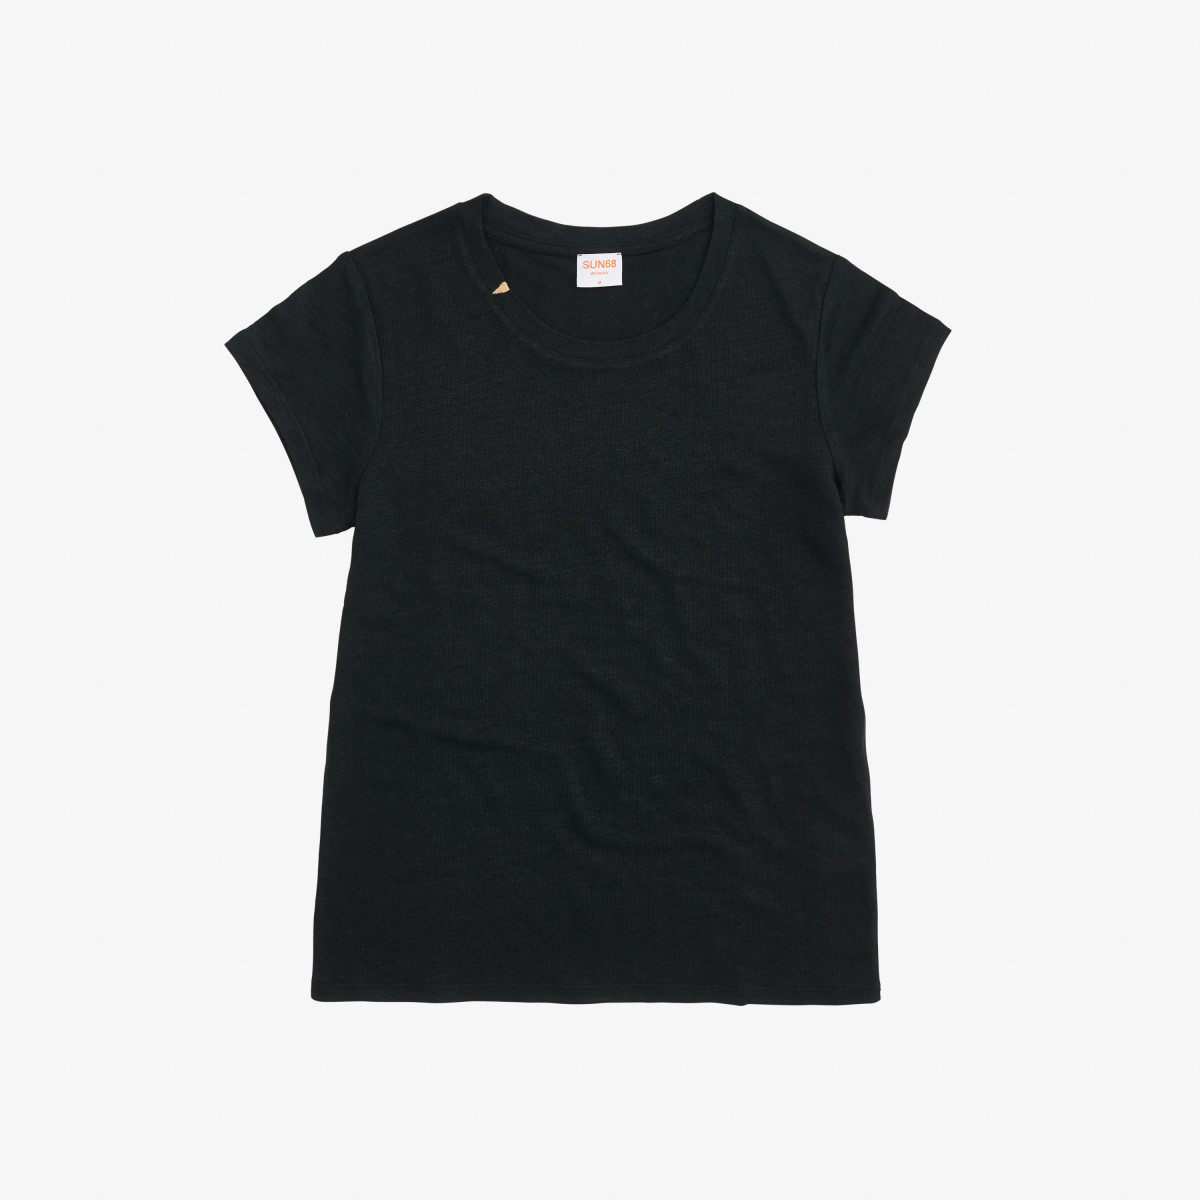 ROUND T-SHIRT LINEN SOLID S/S BLACK